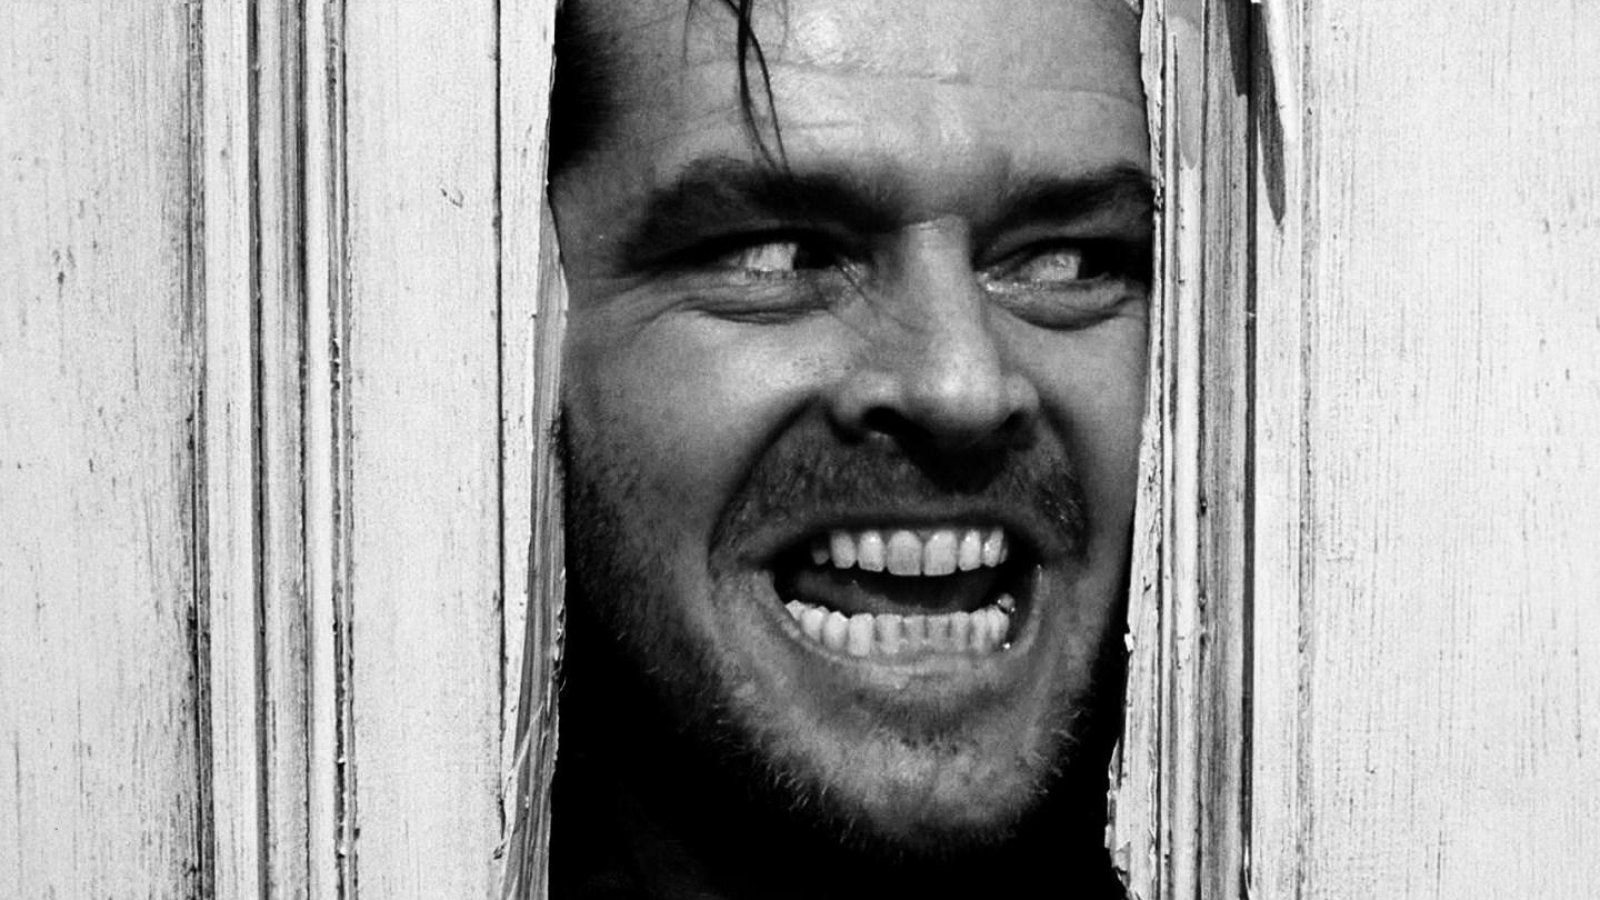 Awesome The Shining free wallpaper ID:146100 for hd 1600x900 computer